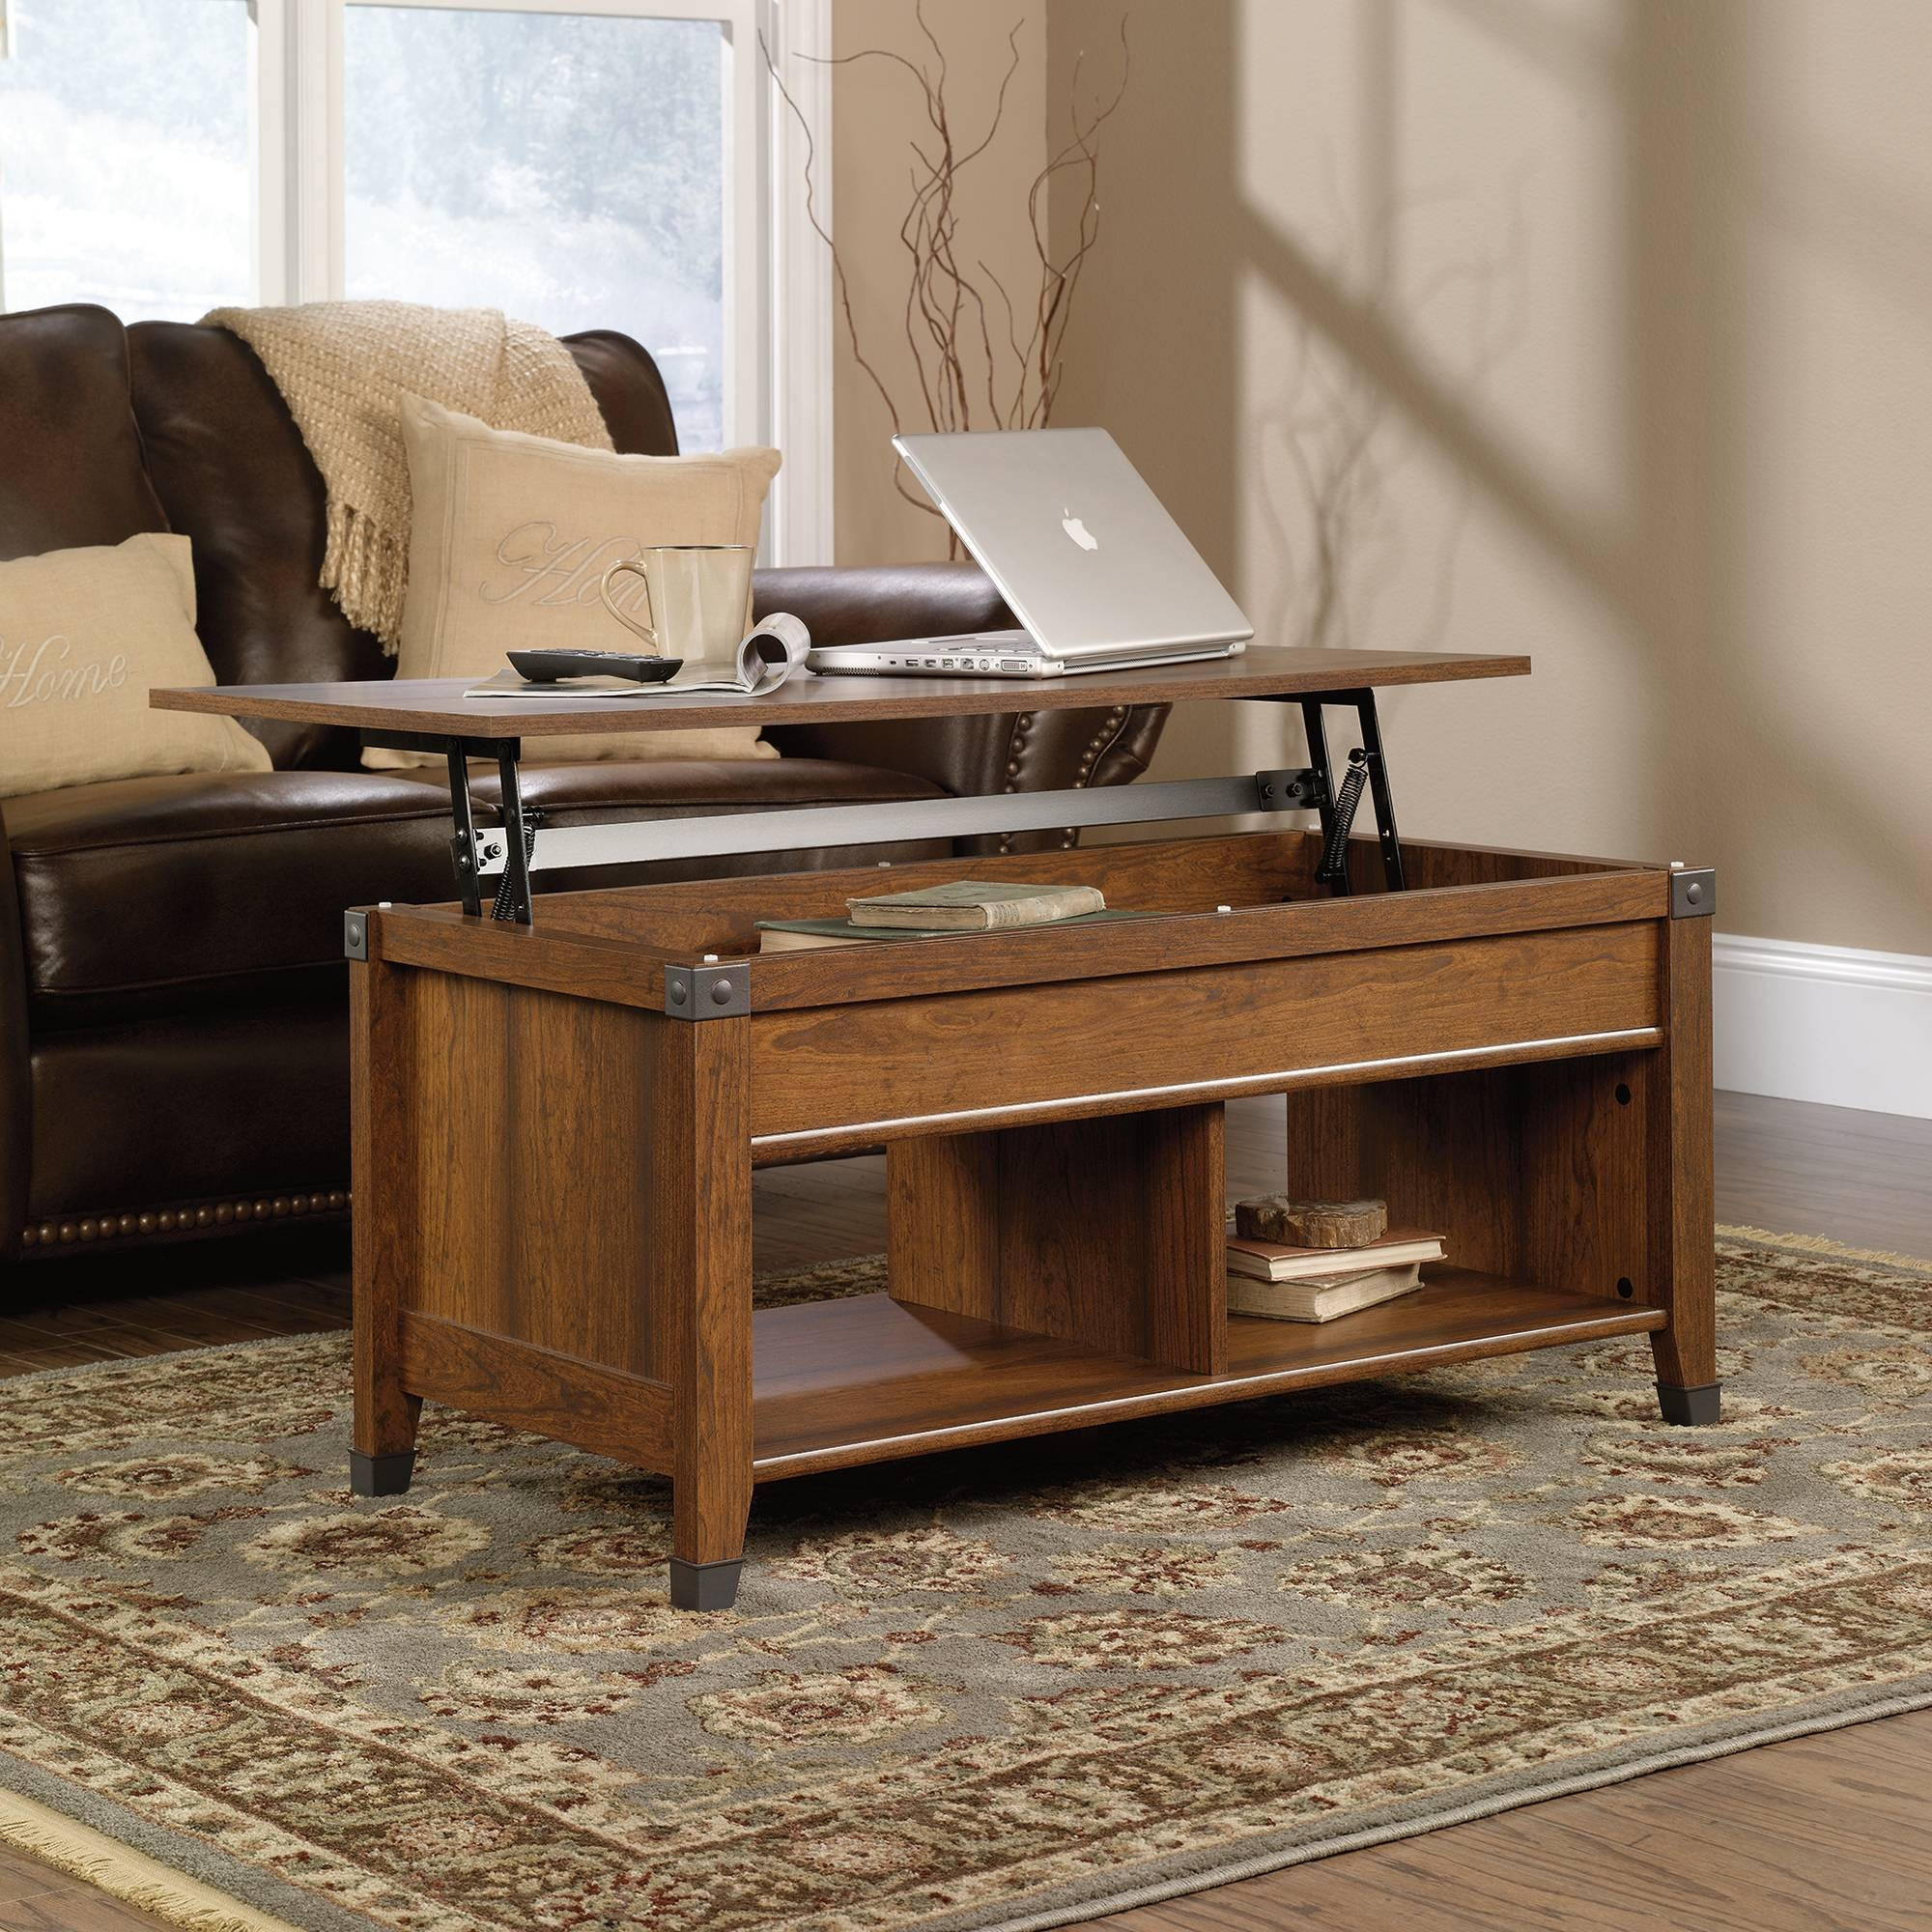 Coffee Table With Storage And Lift Top | Coffee Tables Decoration within Top Lifting Coffee Tables (Image 6 of 30)